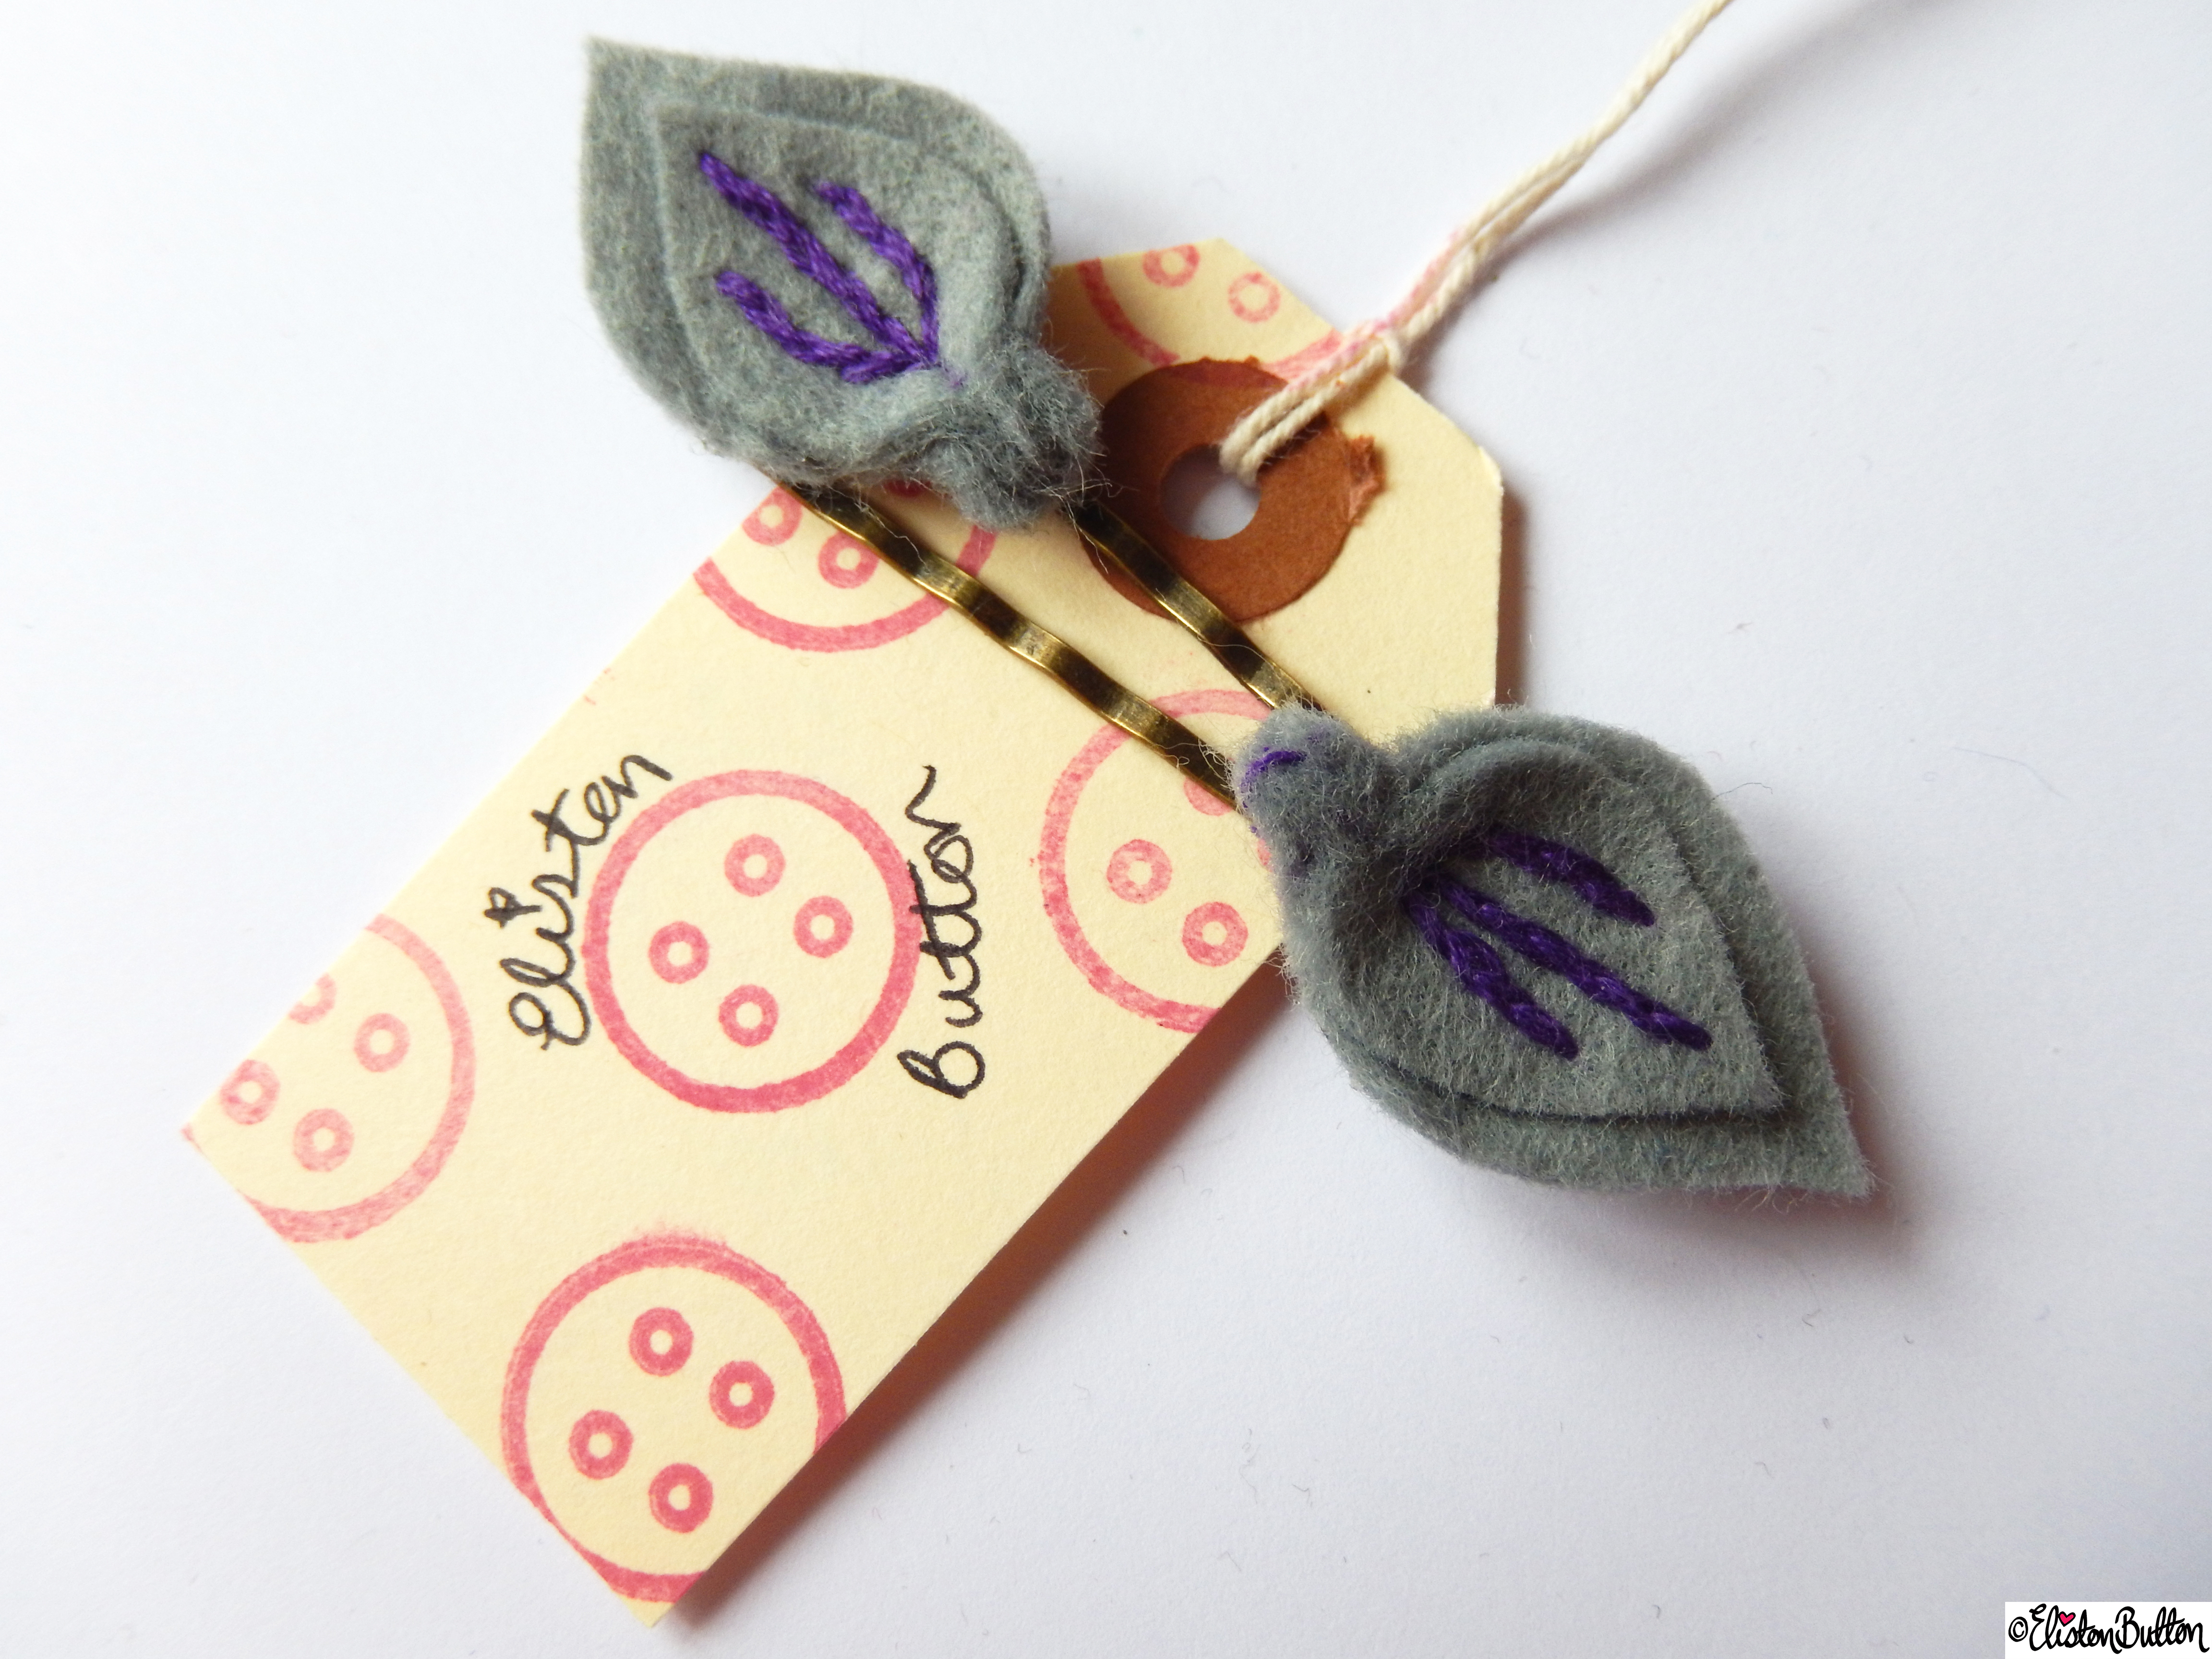 Slate Grey and Purple Berry Embroidered Felt Hair Grips on Branded Luggage Tag - Create 28 - No.4 - Embroidered Felt Petal Hair Grips at www.elistonbutton.com - Eliston Button - That Crafty Kid – Art, Design, Craft & Adventure.